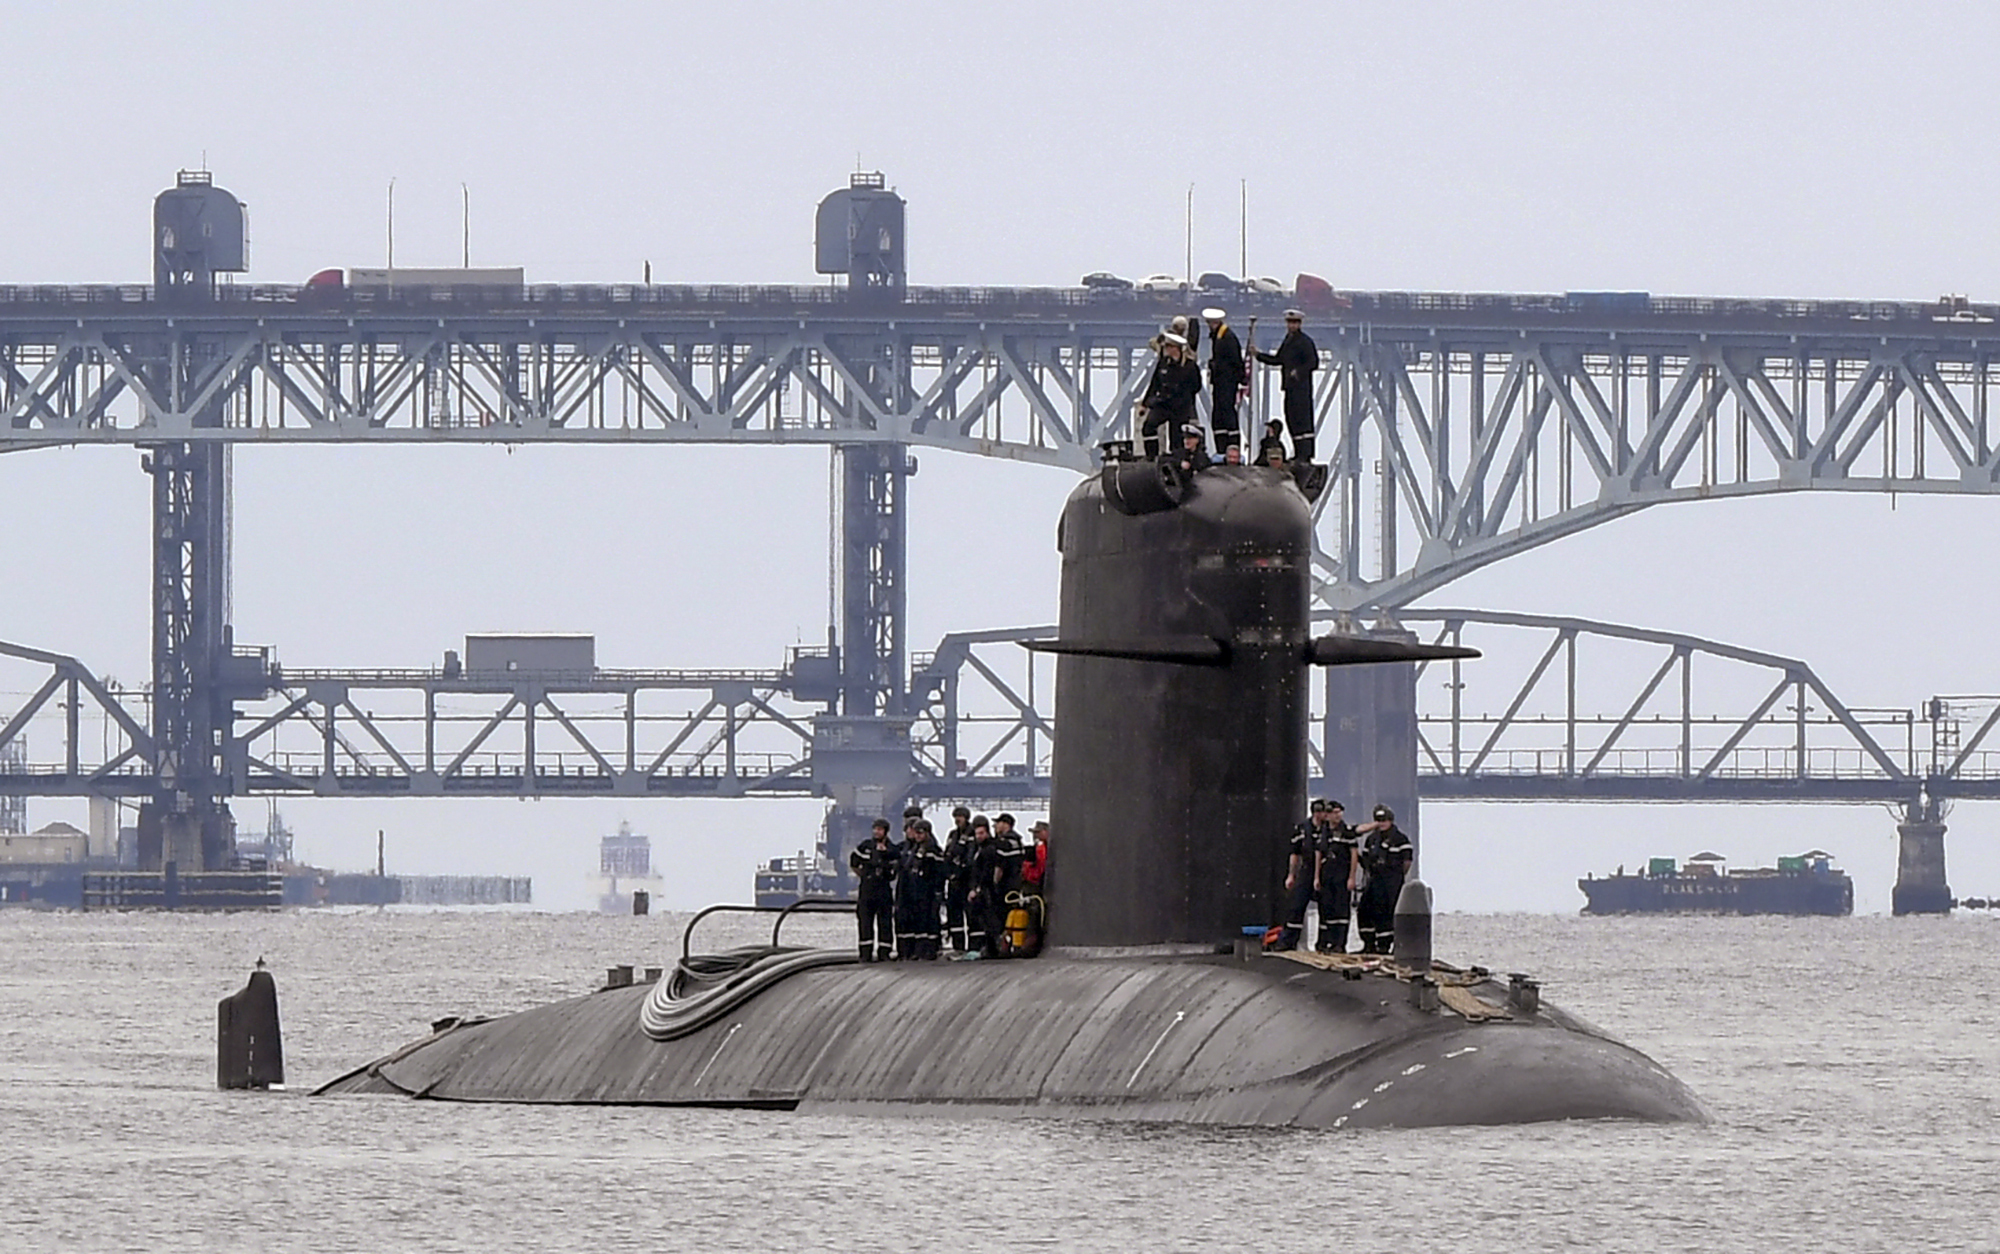 FNS Amethyste (S605) visits Naval Submarine Base New London